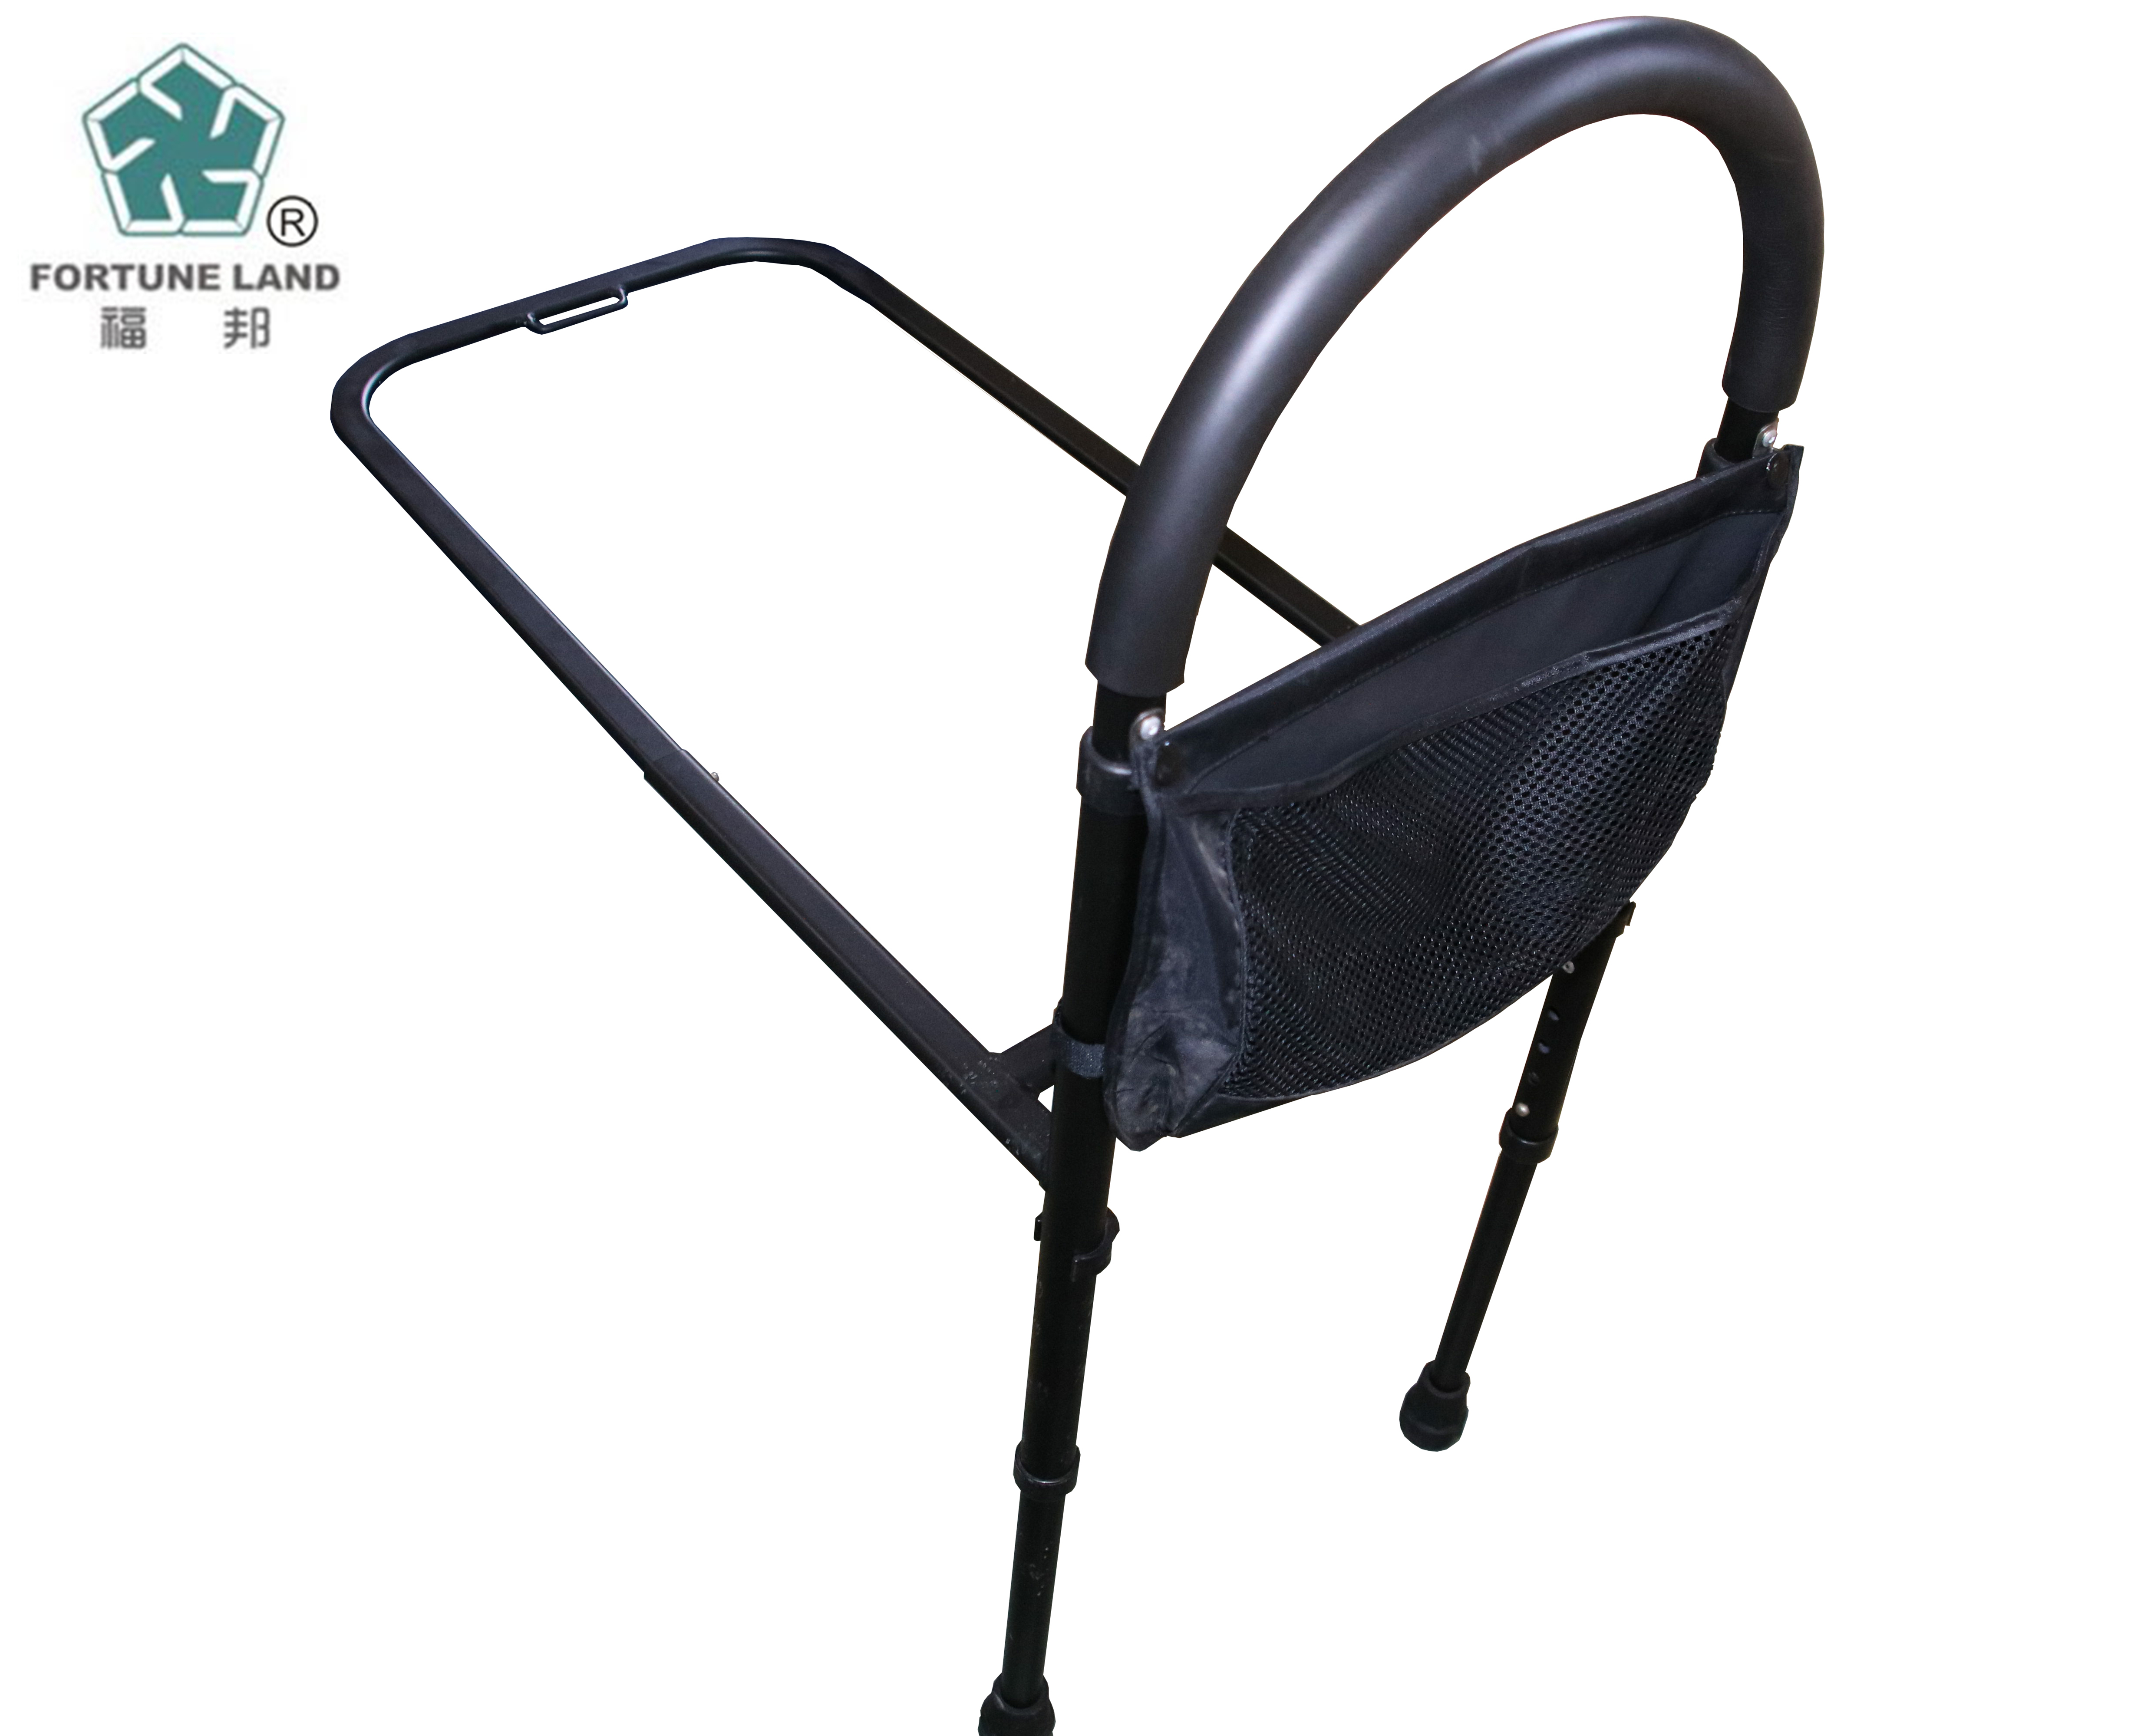 Portable safety bed assist rails